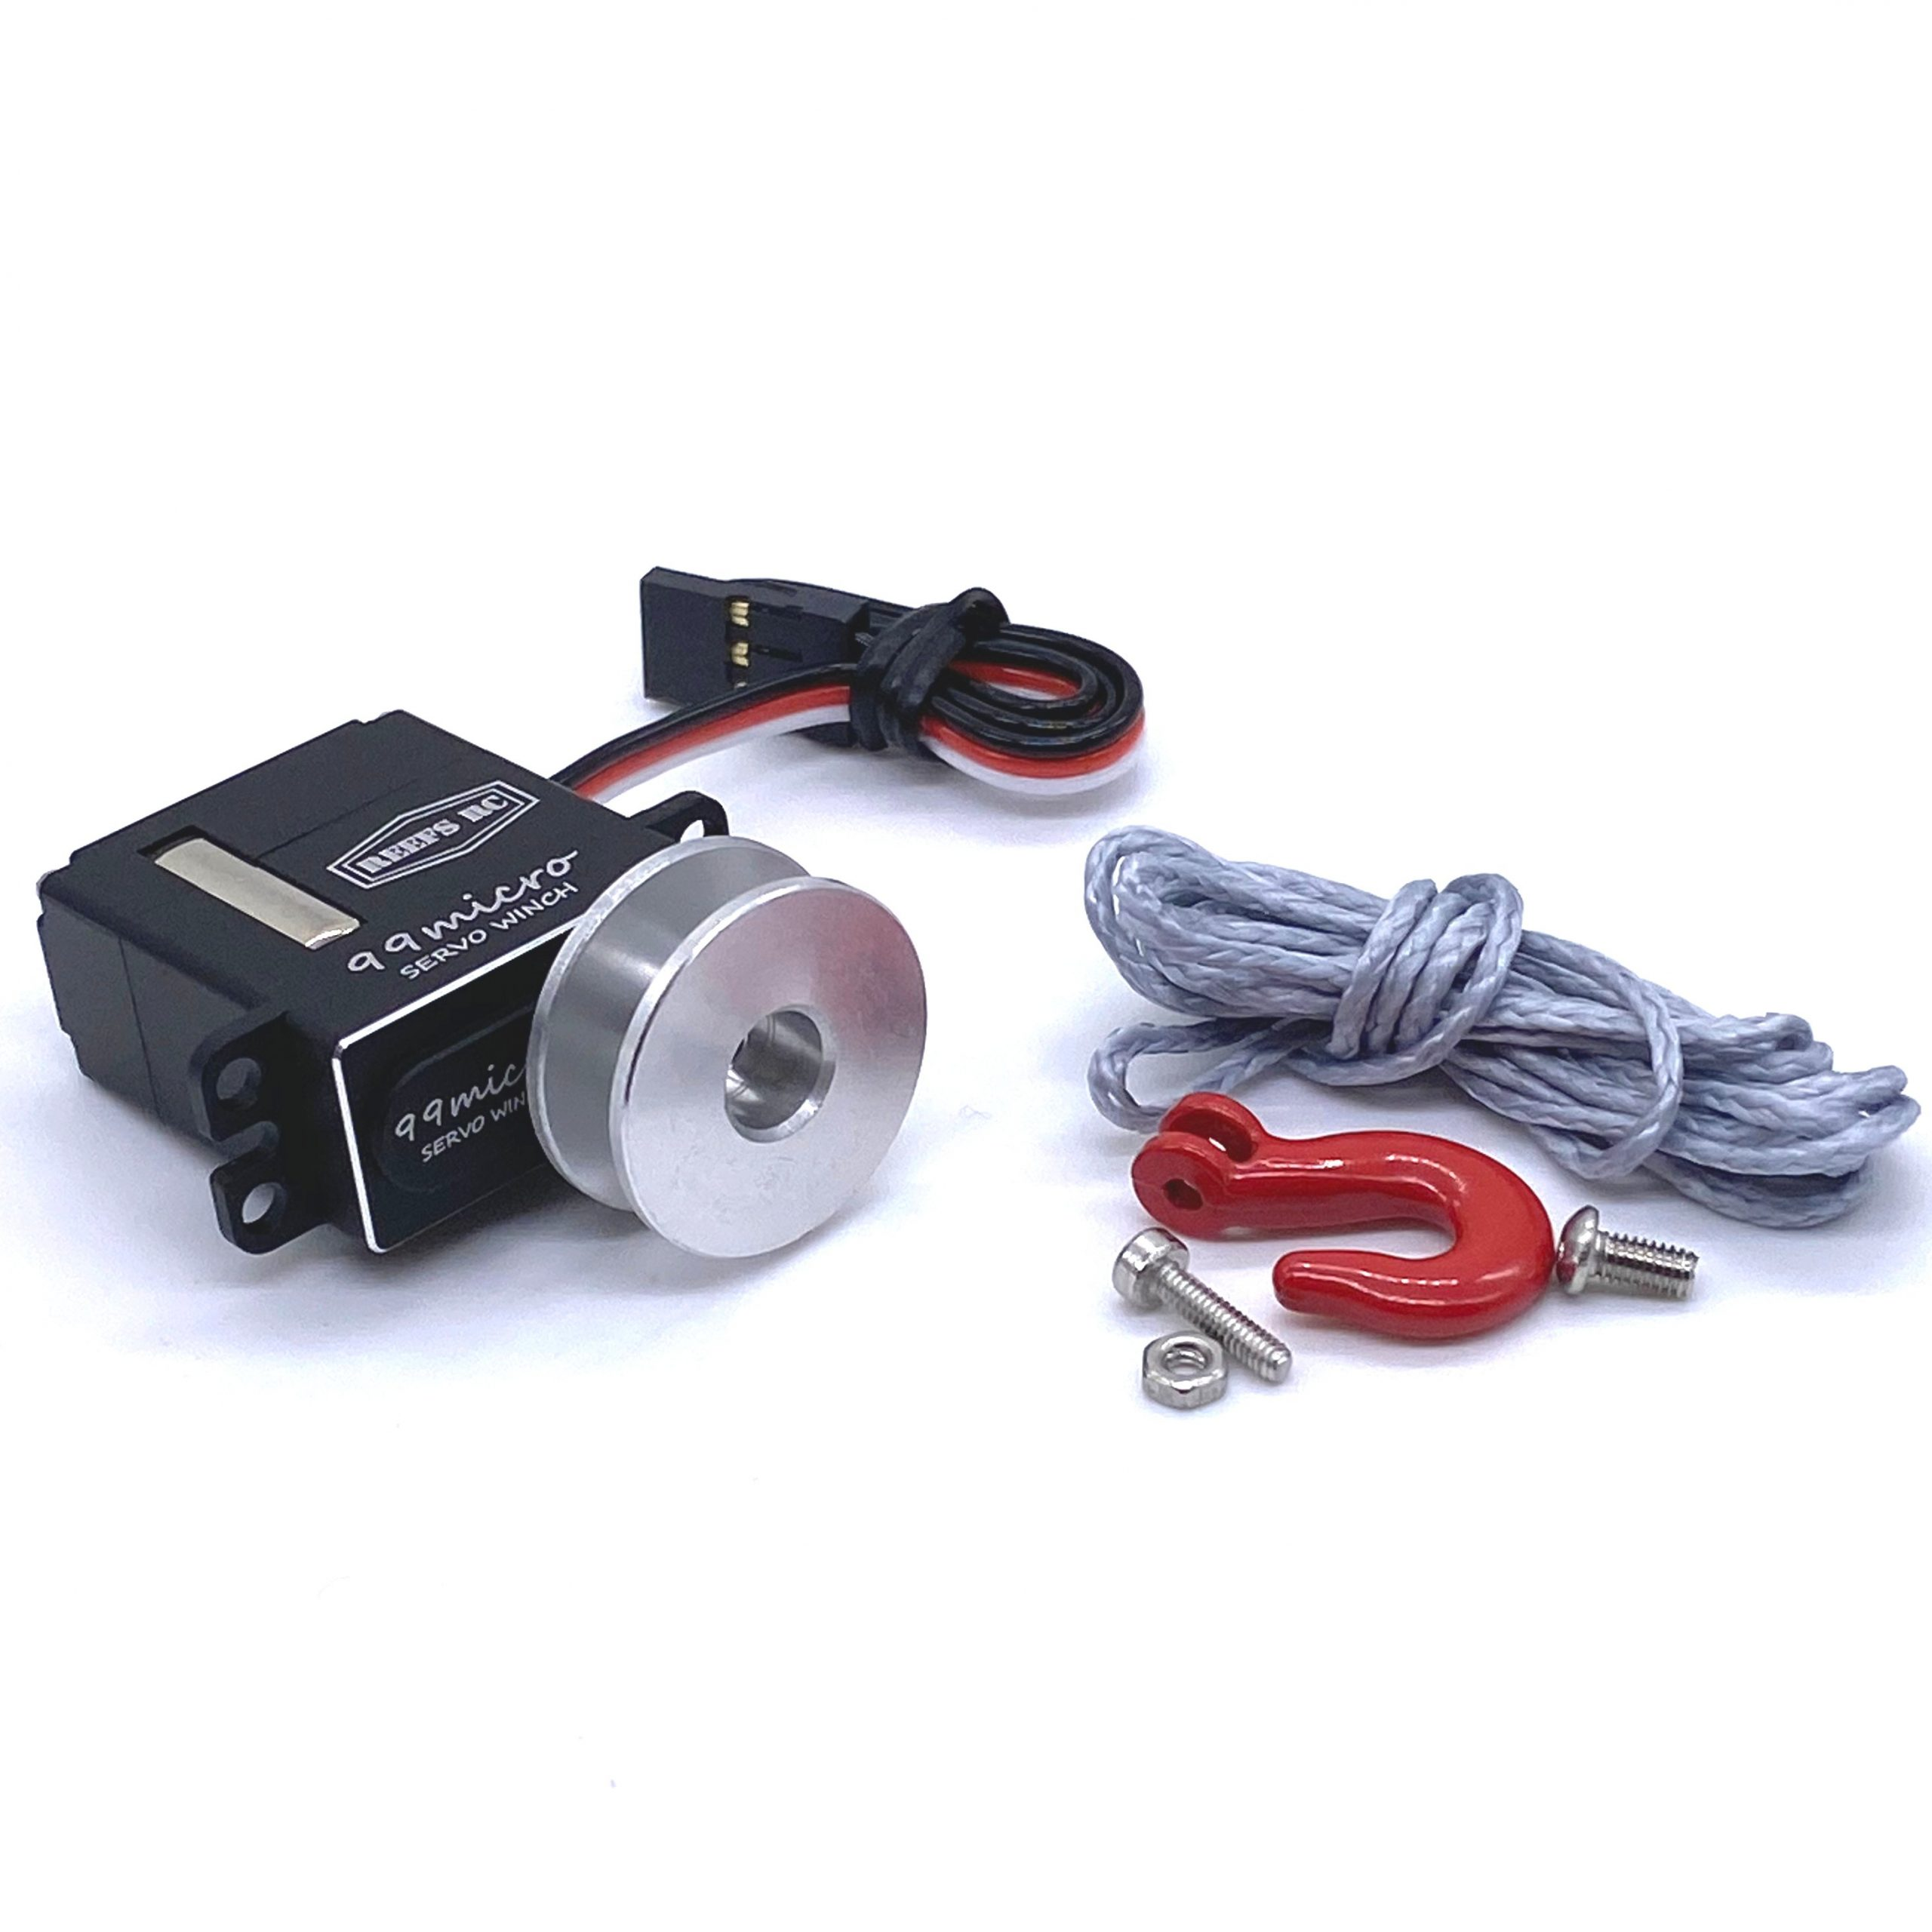 Small Yet Mighty; Reef's RC Announces the 99Micro Servo Winch